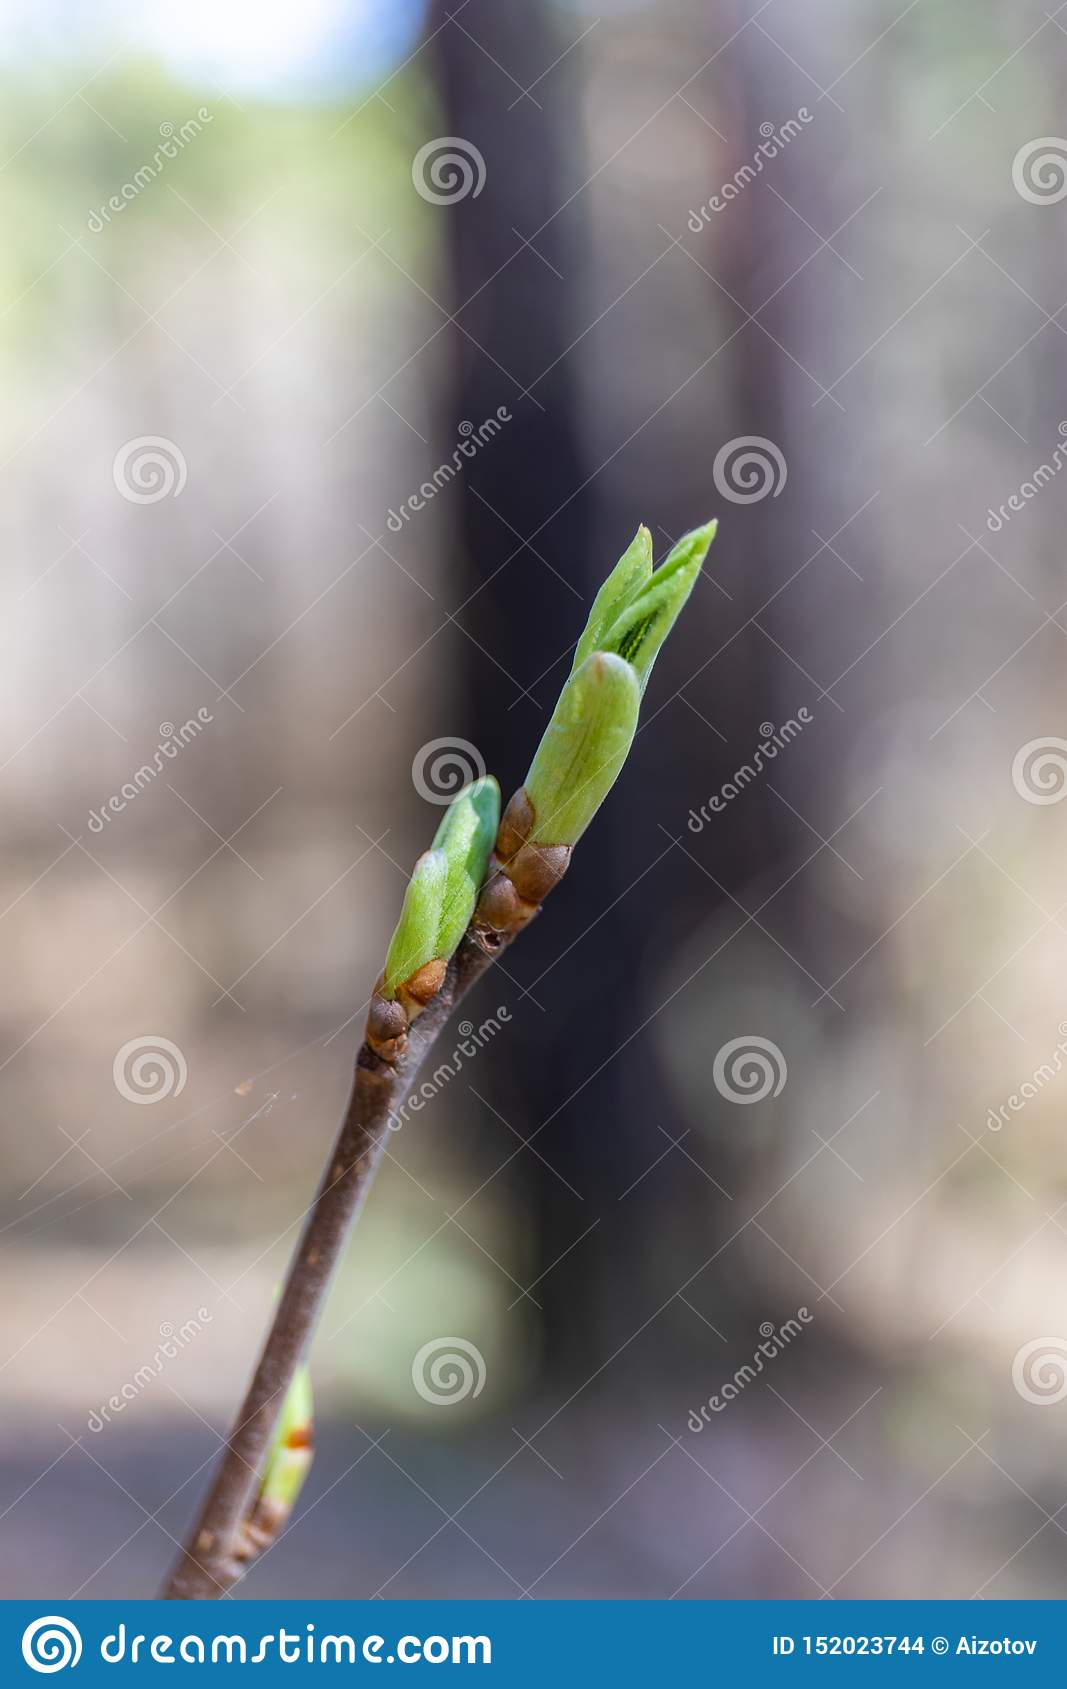 In the spring, a new life begins in nature, buds open and flowers bloom